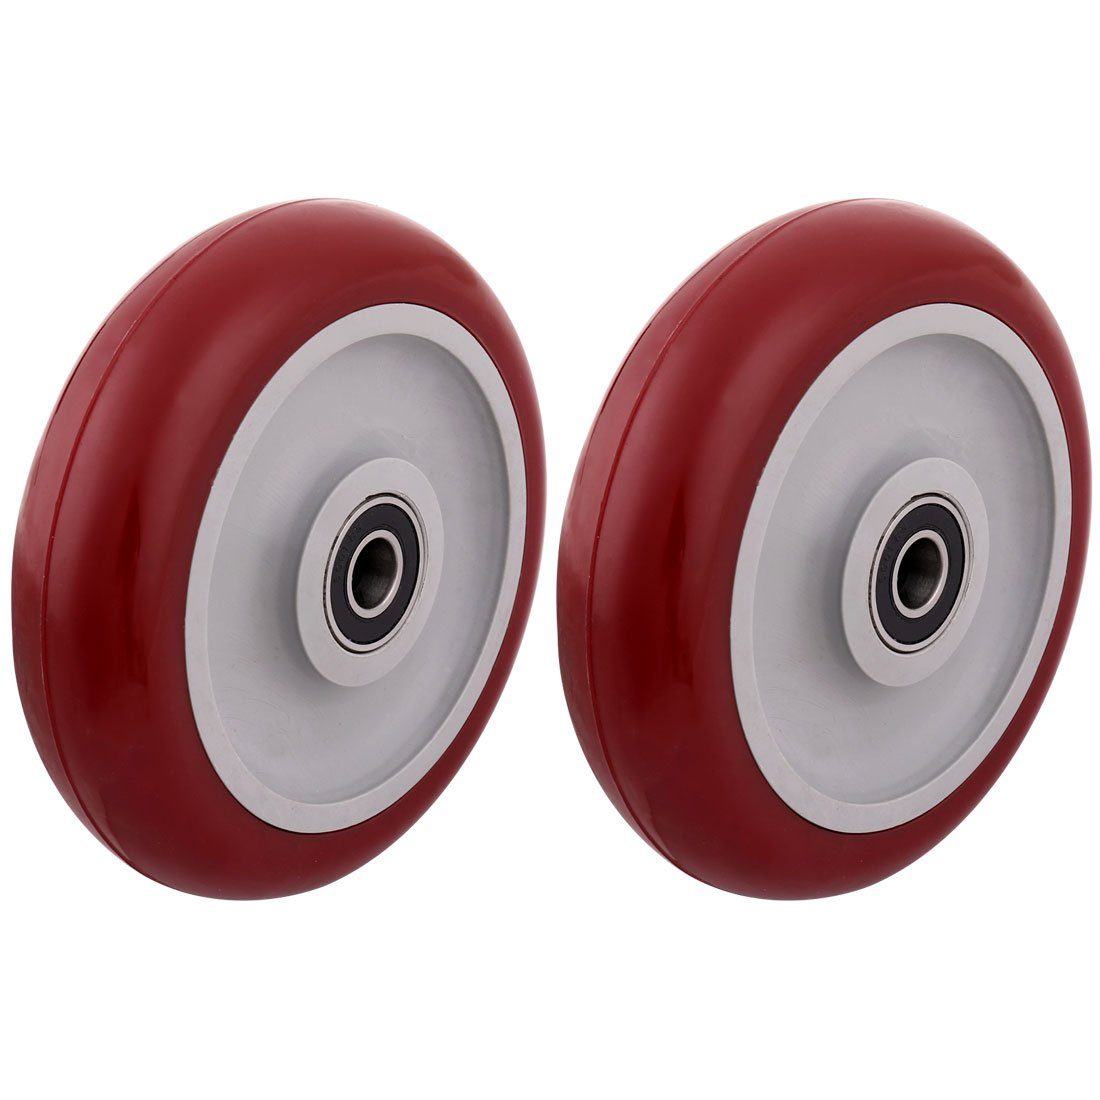 uxcell 5 Polyurethane on Hard plastic Wheel with Bearing Shim and Bushing Replacement Part For Carts Furniture Dolly Workbench Trolley Wheel Only Red Set of 2